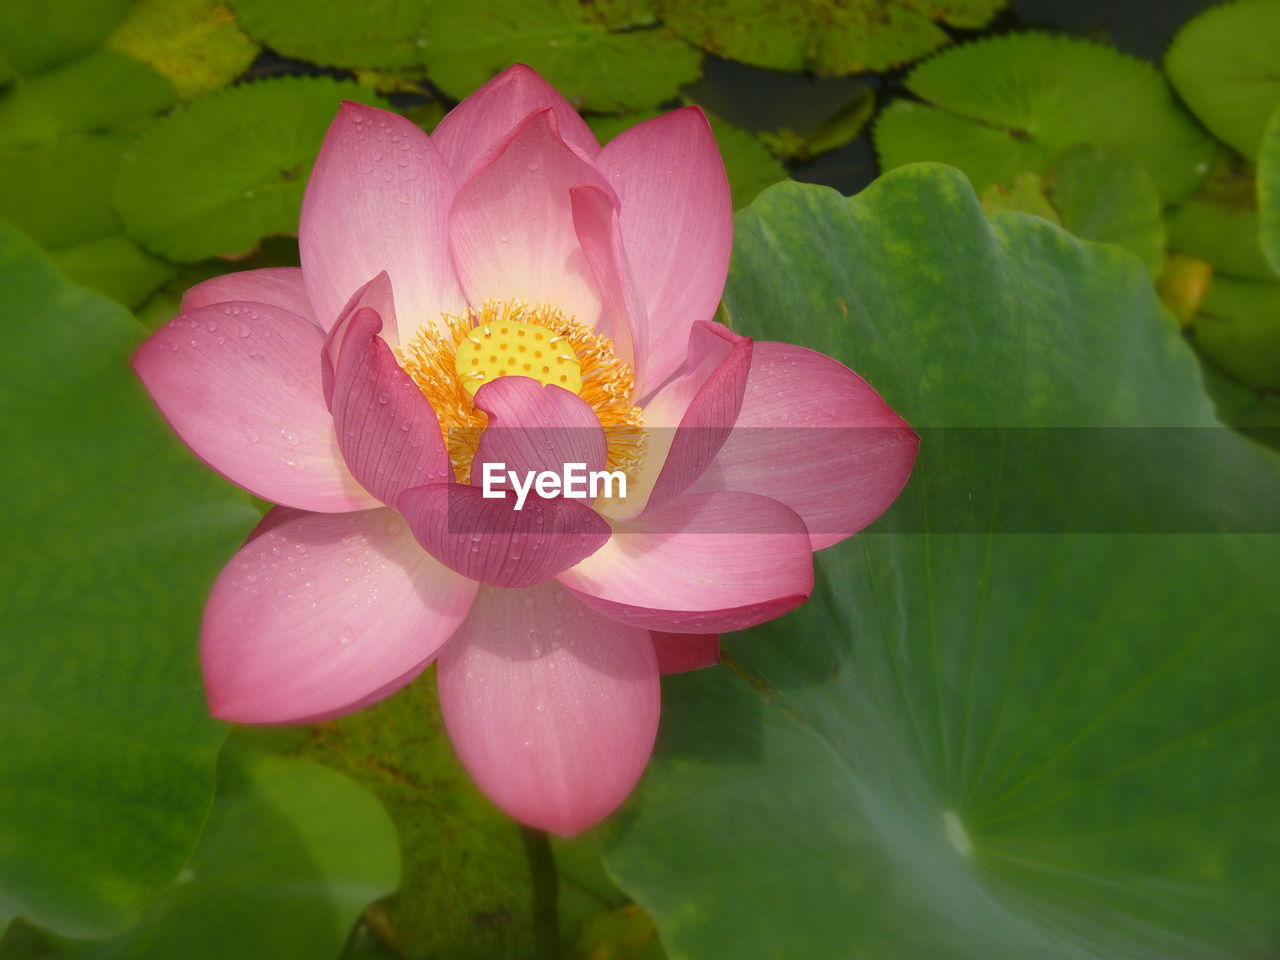 flowering plant, flower, plant, freshness, beauty in nature, petal, pink color, growth, vulnerability, flower head, inflorescence, fragility, close-up, leaf, nature, water, plant part, water lily, no people, pollen, outdoors, lotus water lily